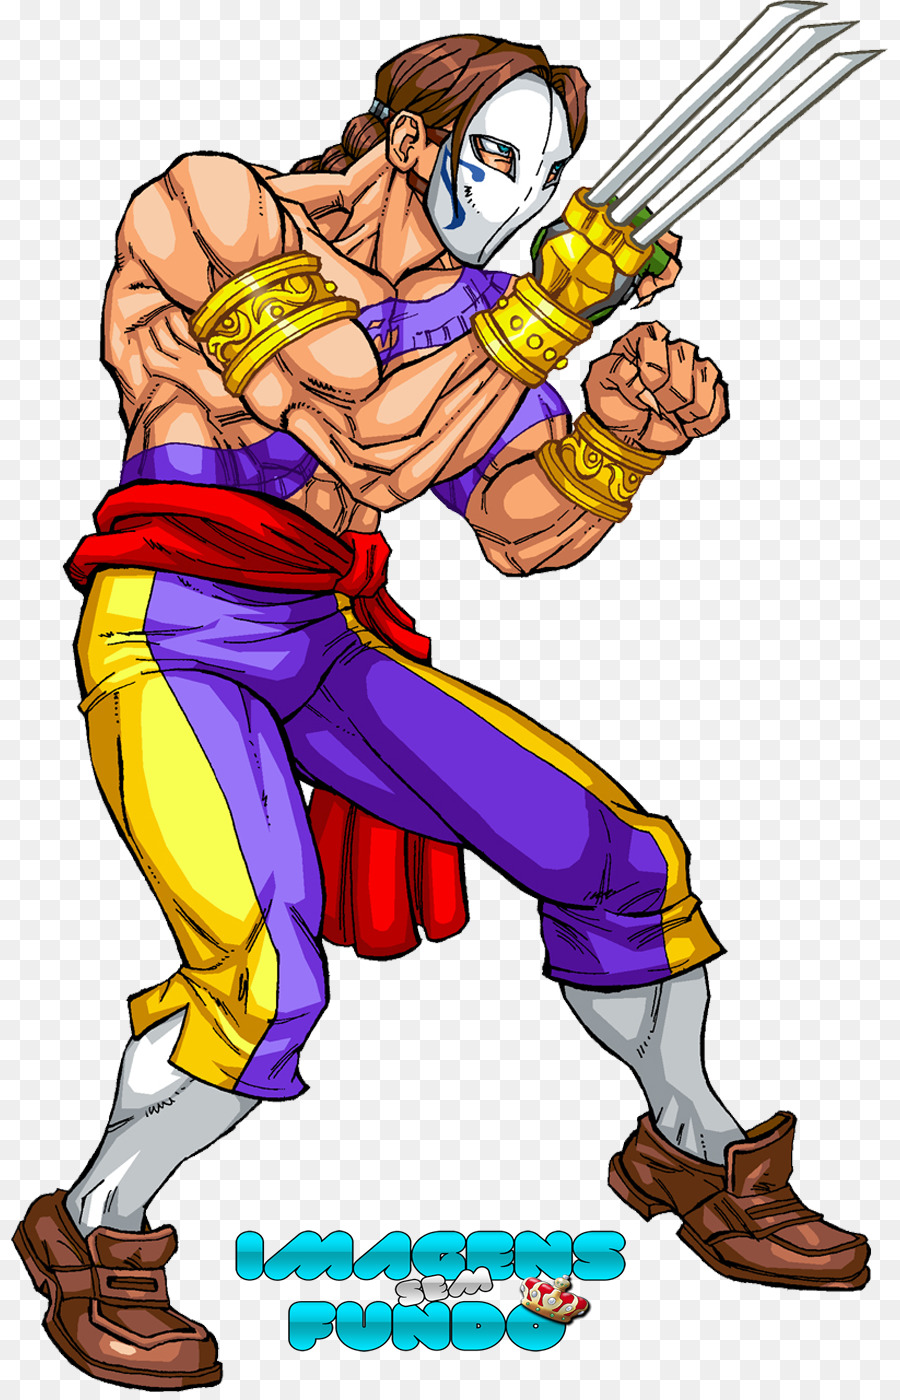 Street Fighter Ii The World Warrior Superhero png download - 877